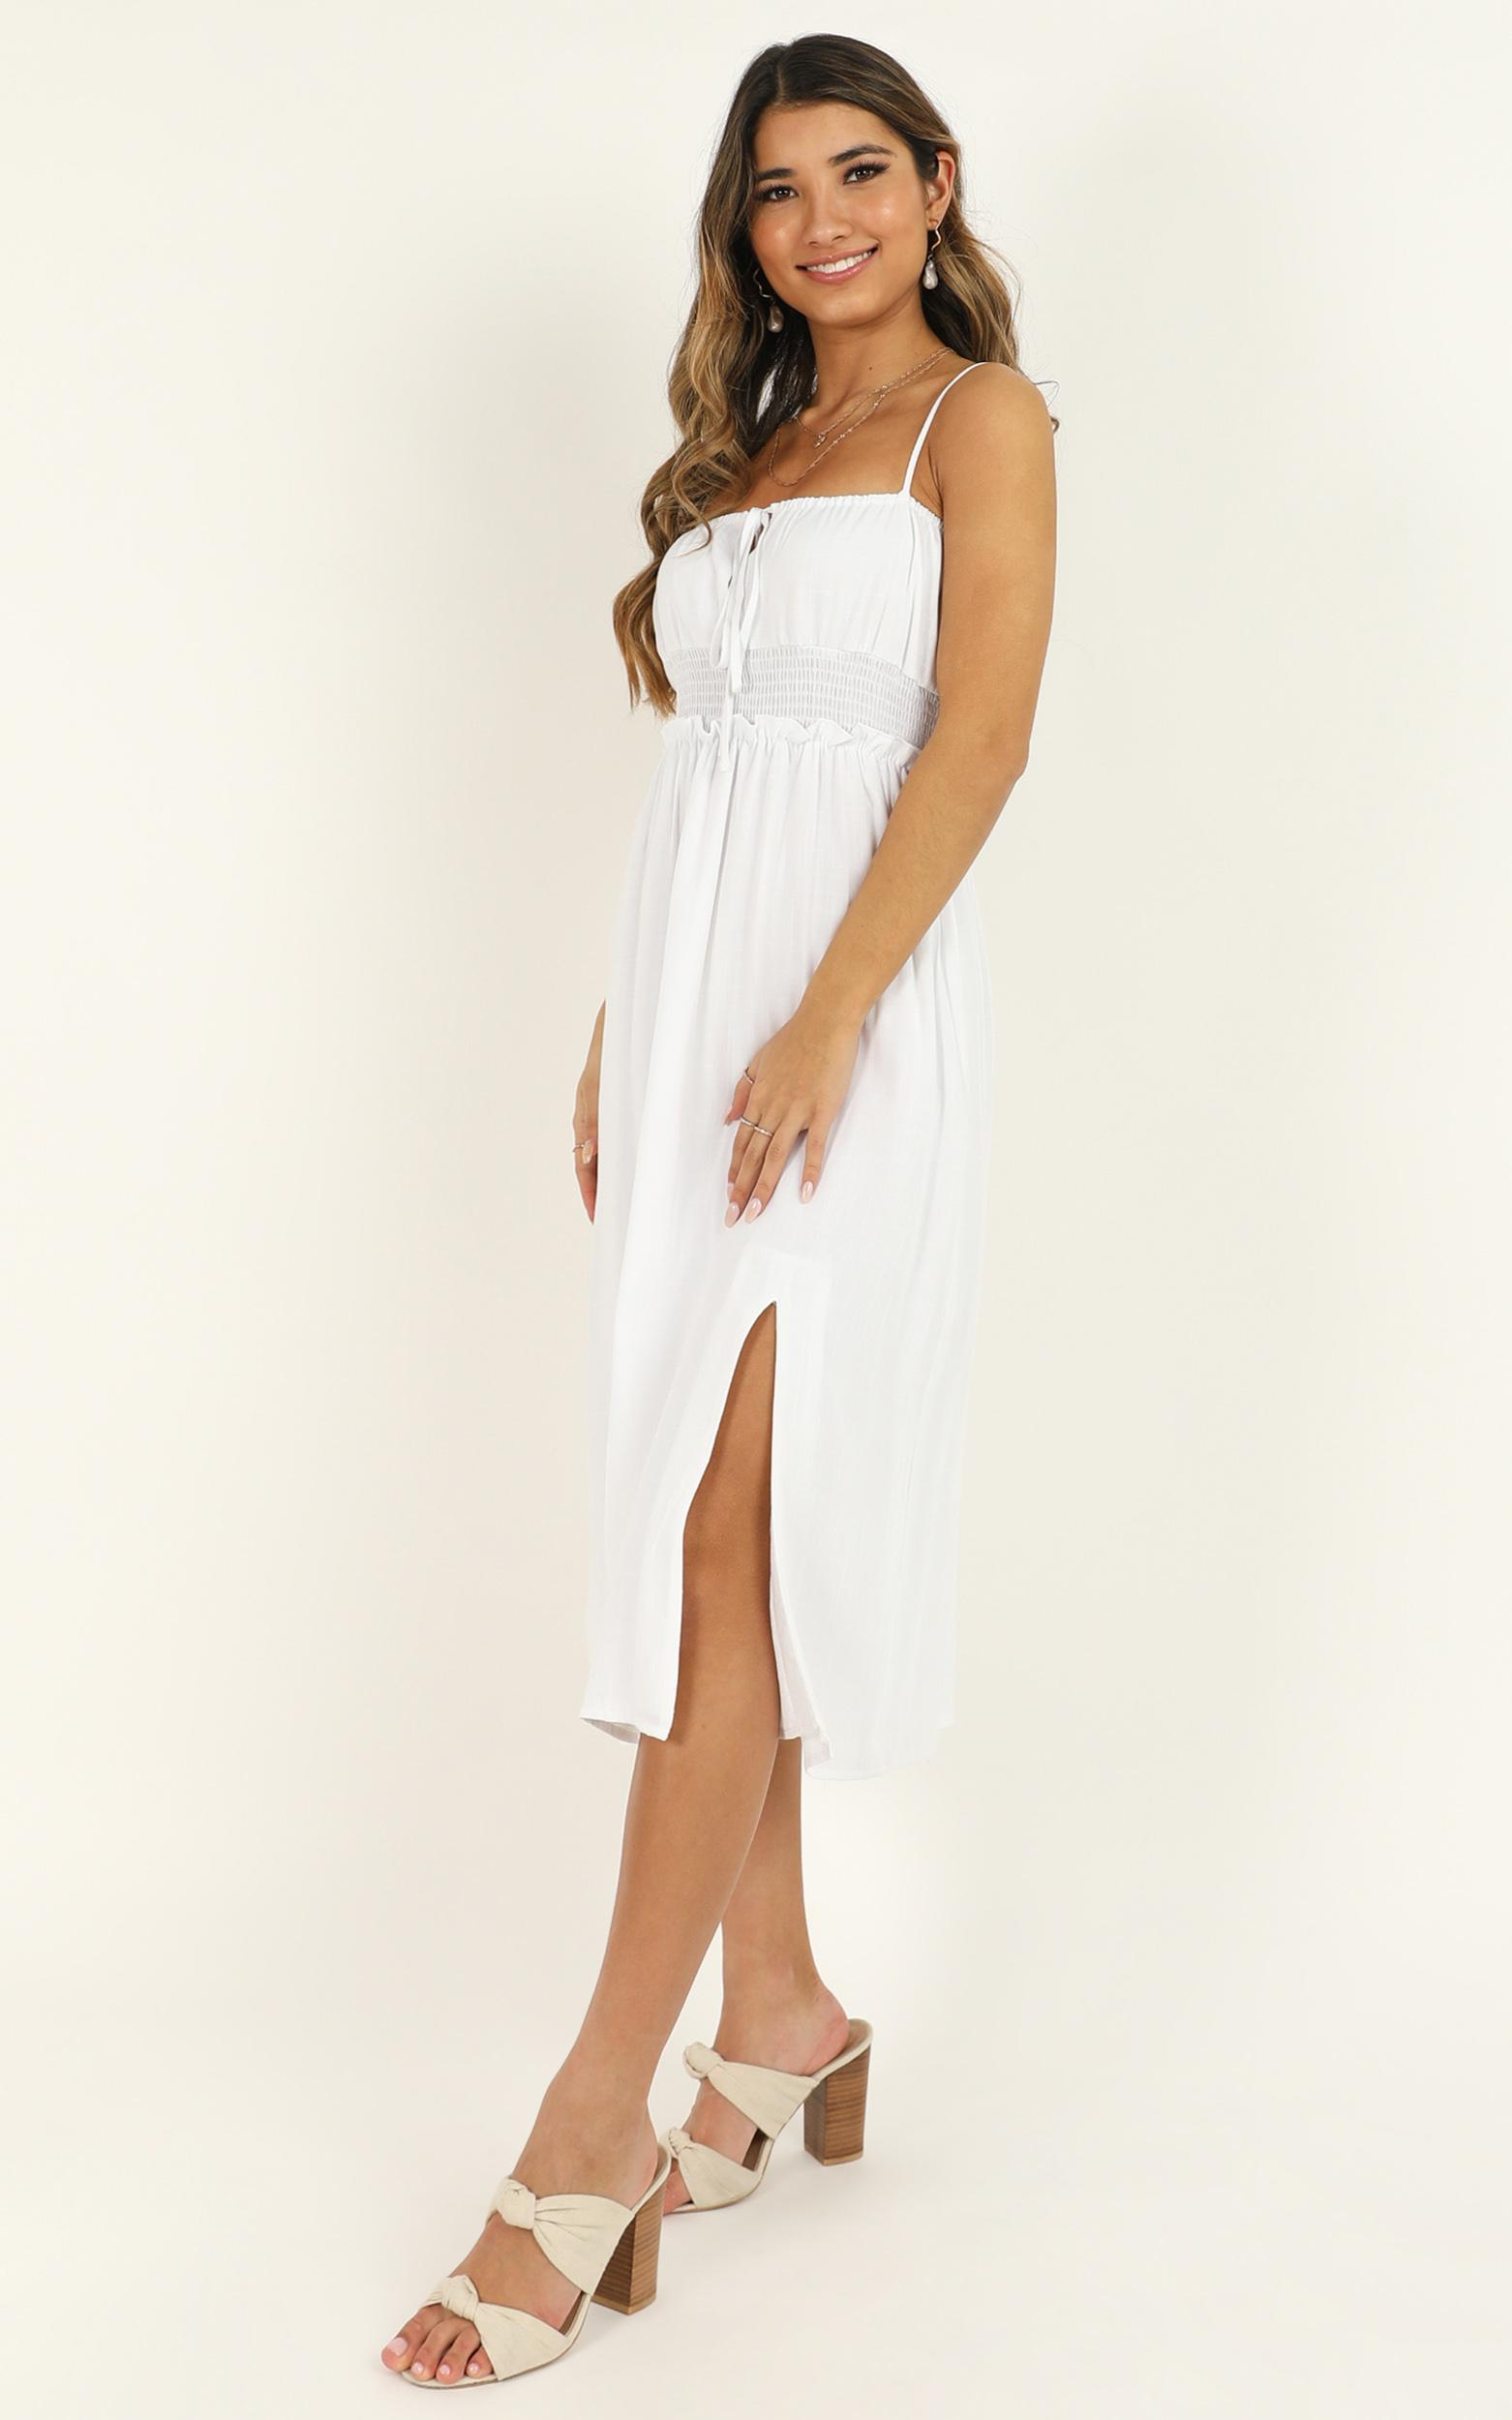 Speaking Fondly Dress in white - 20 (XXXXL), White, hi-res image number null